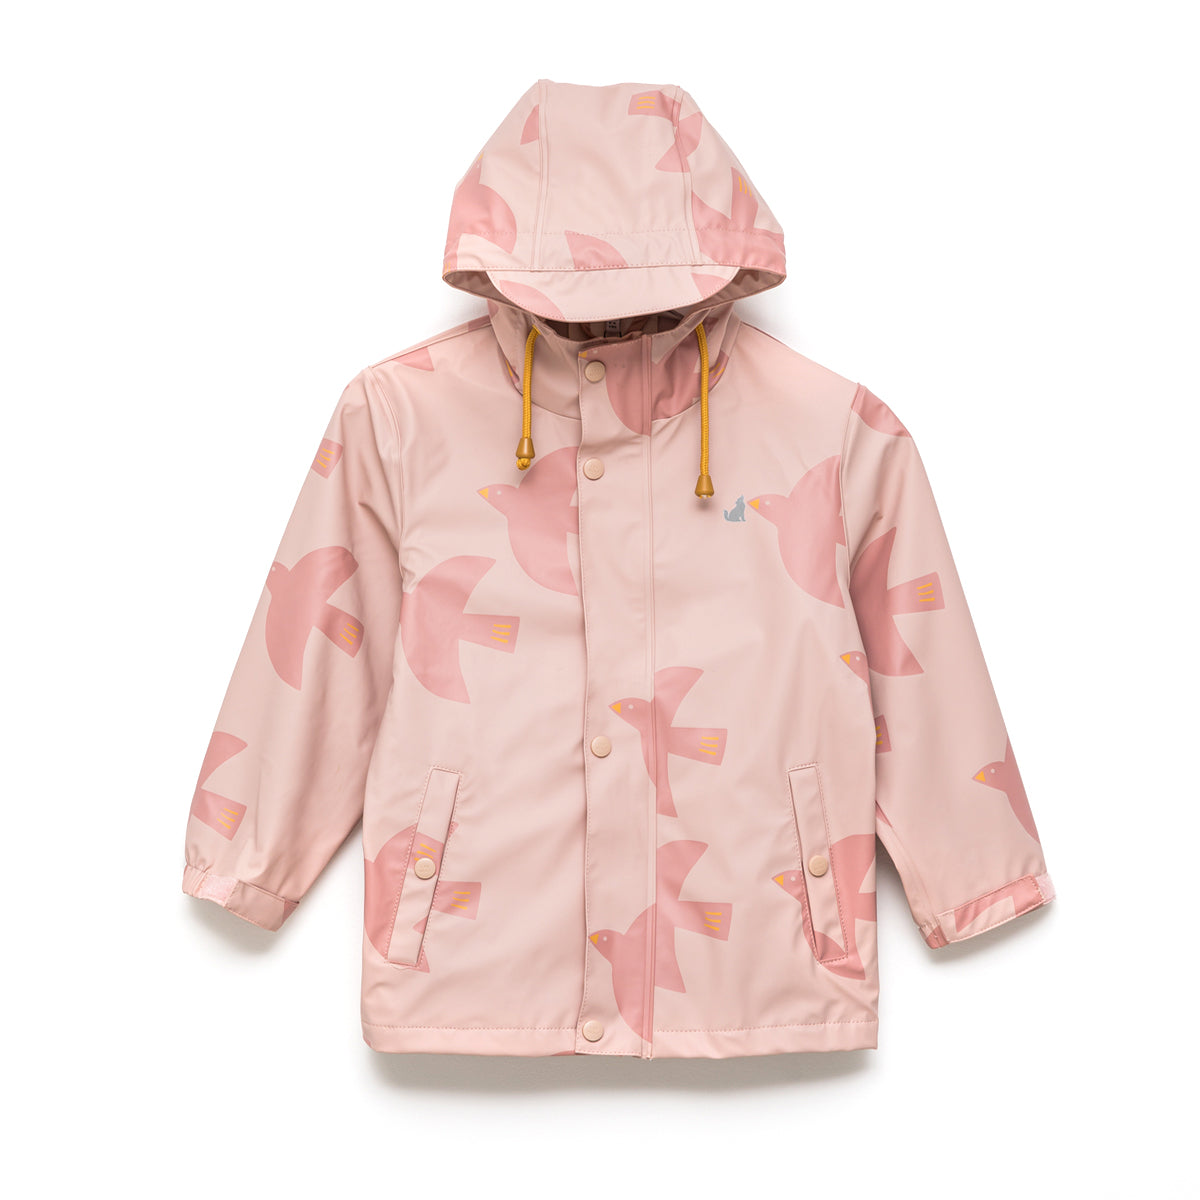 Girls Play Rain Jacket Birds